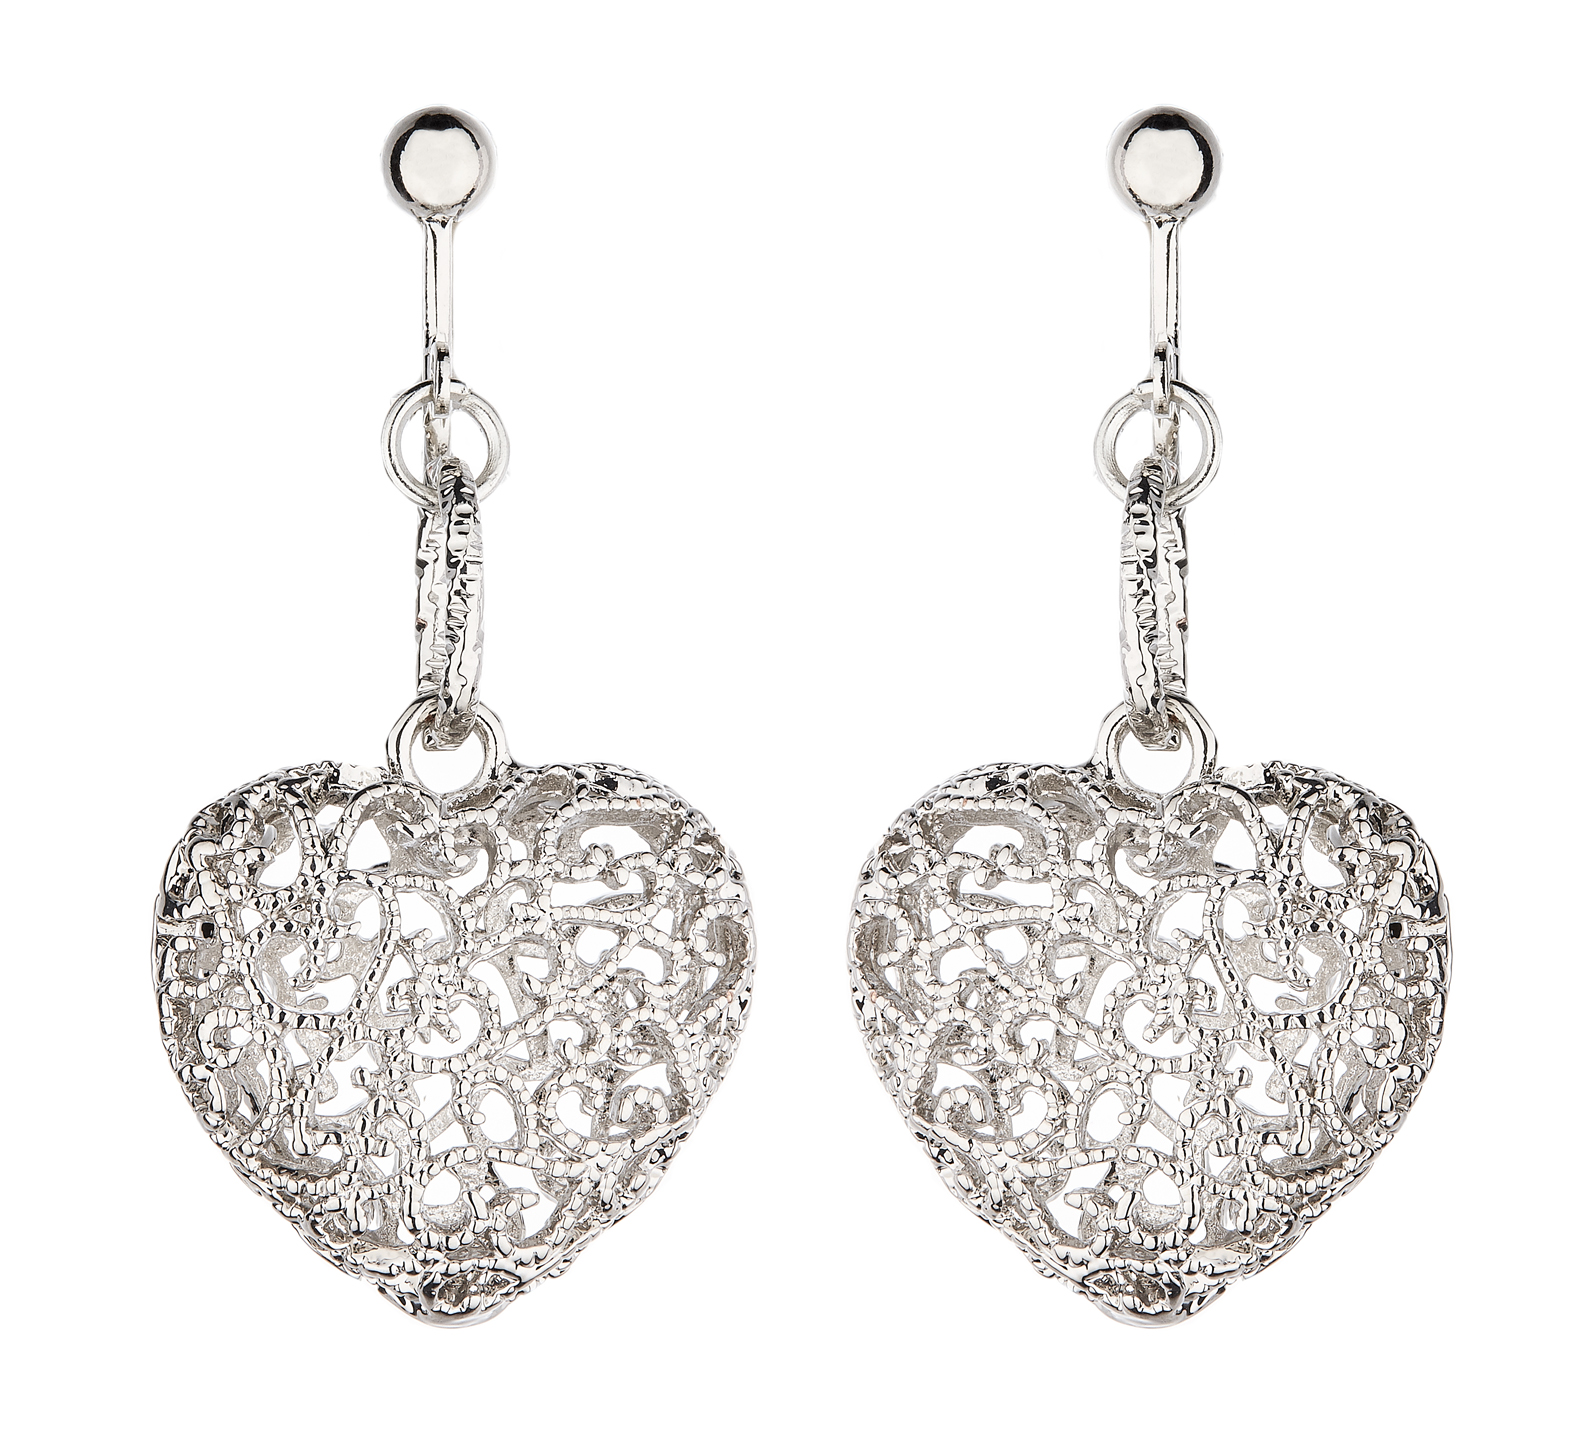 Clip On Earrings - Kalisha S - silver heart